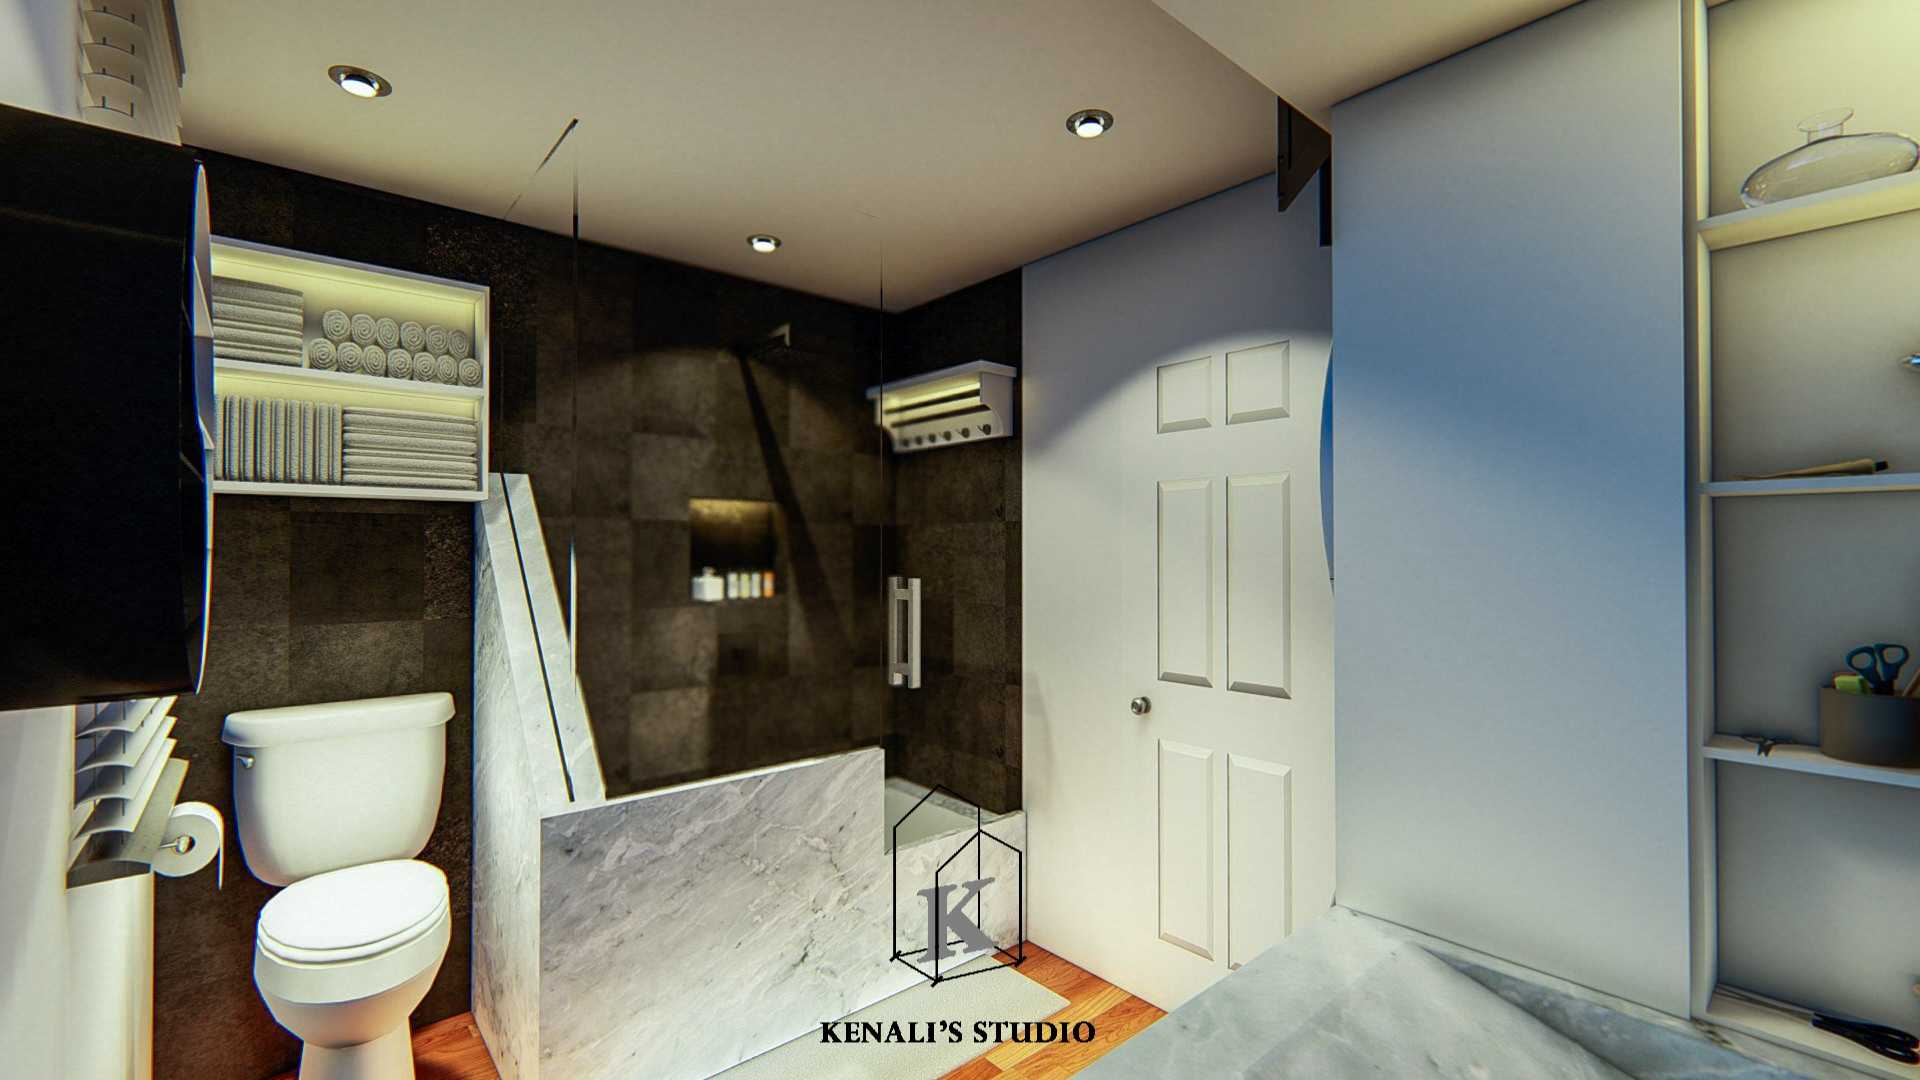 Kenali's Studio Project : Laundry & Bathroom Amerika Serikat Amerika Serikat Kenalis-Studio-Project-Laundry-Bathroom   72915